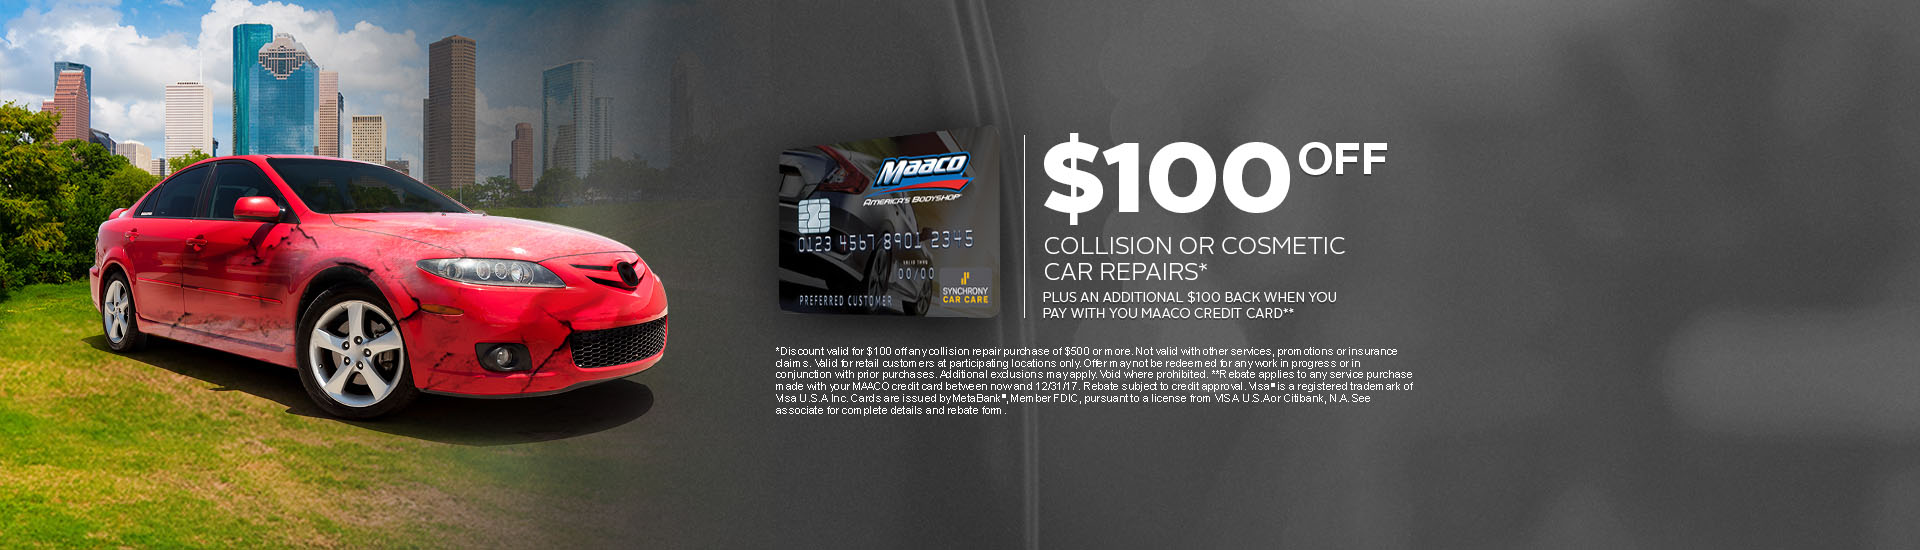 Maaco: $100 off Rebate on Collision or Cosmetic work, when using your Maaco Credit Card!